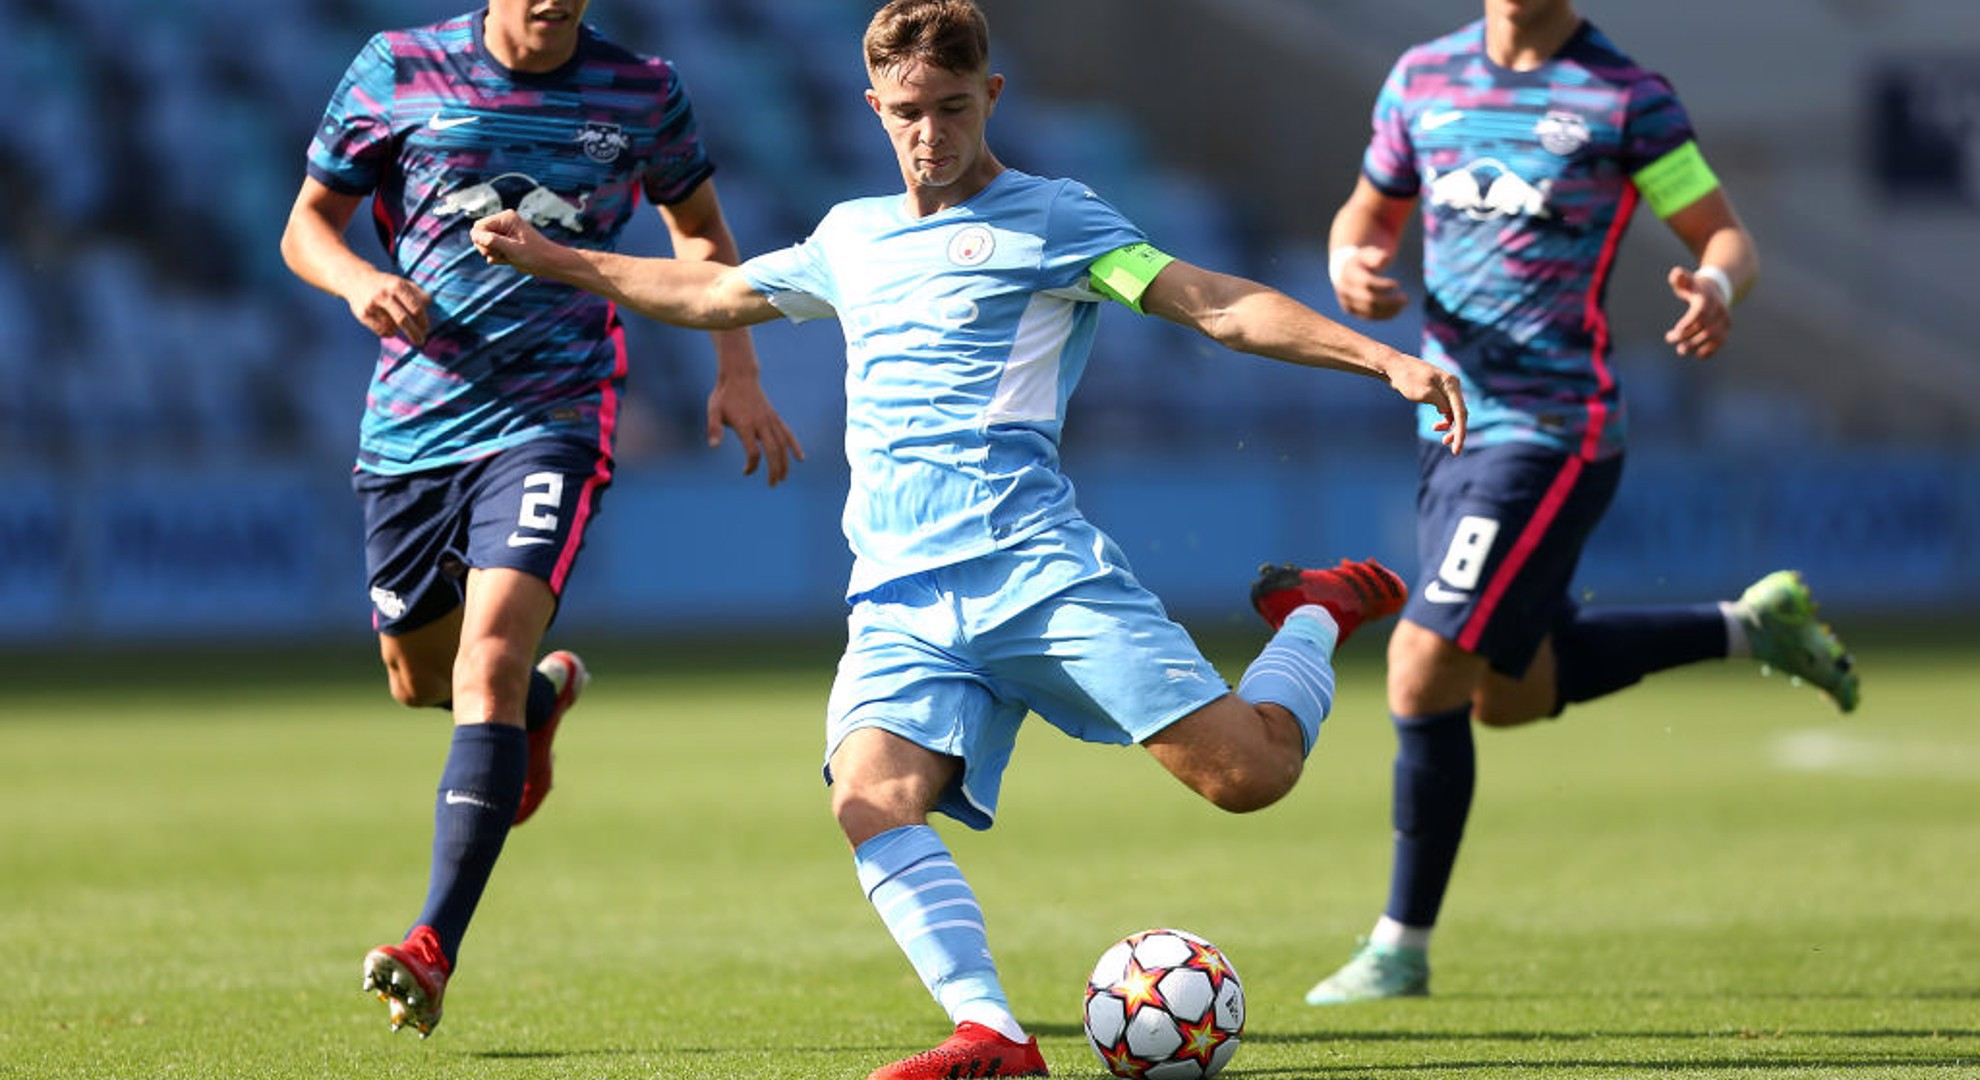 ACTION MAN: City EDS skipper James McAtee in the thick of the action